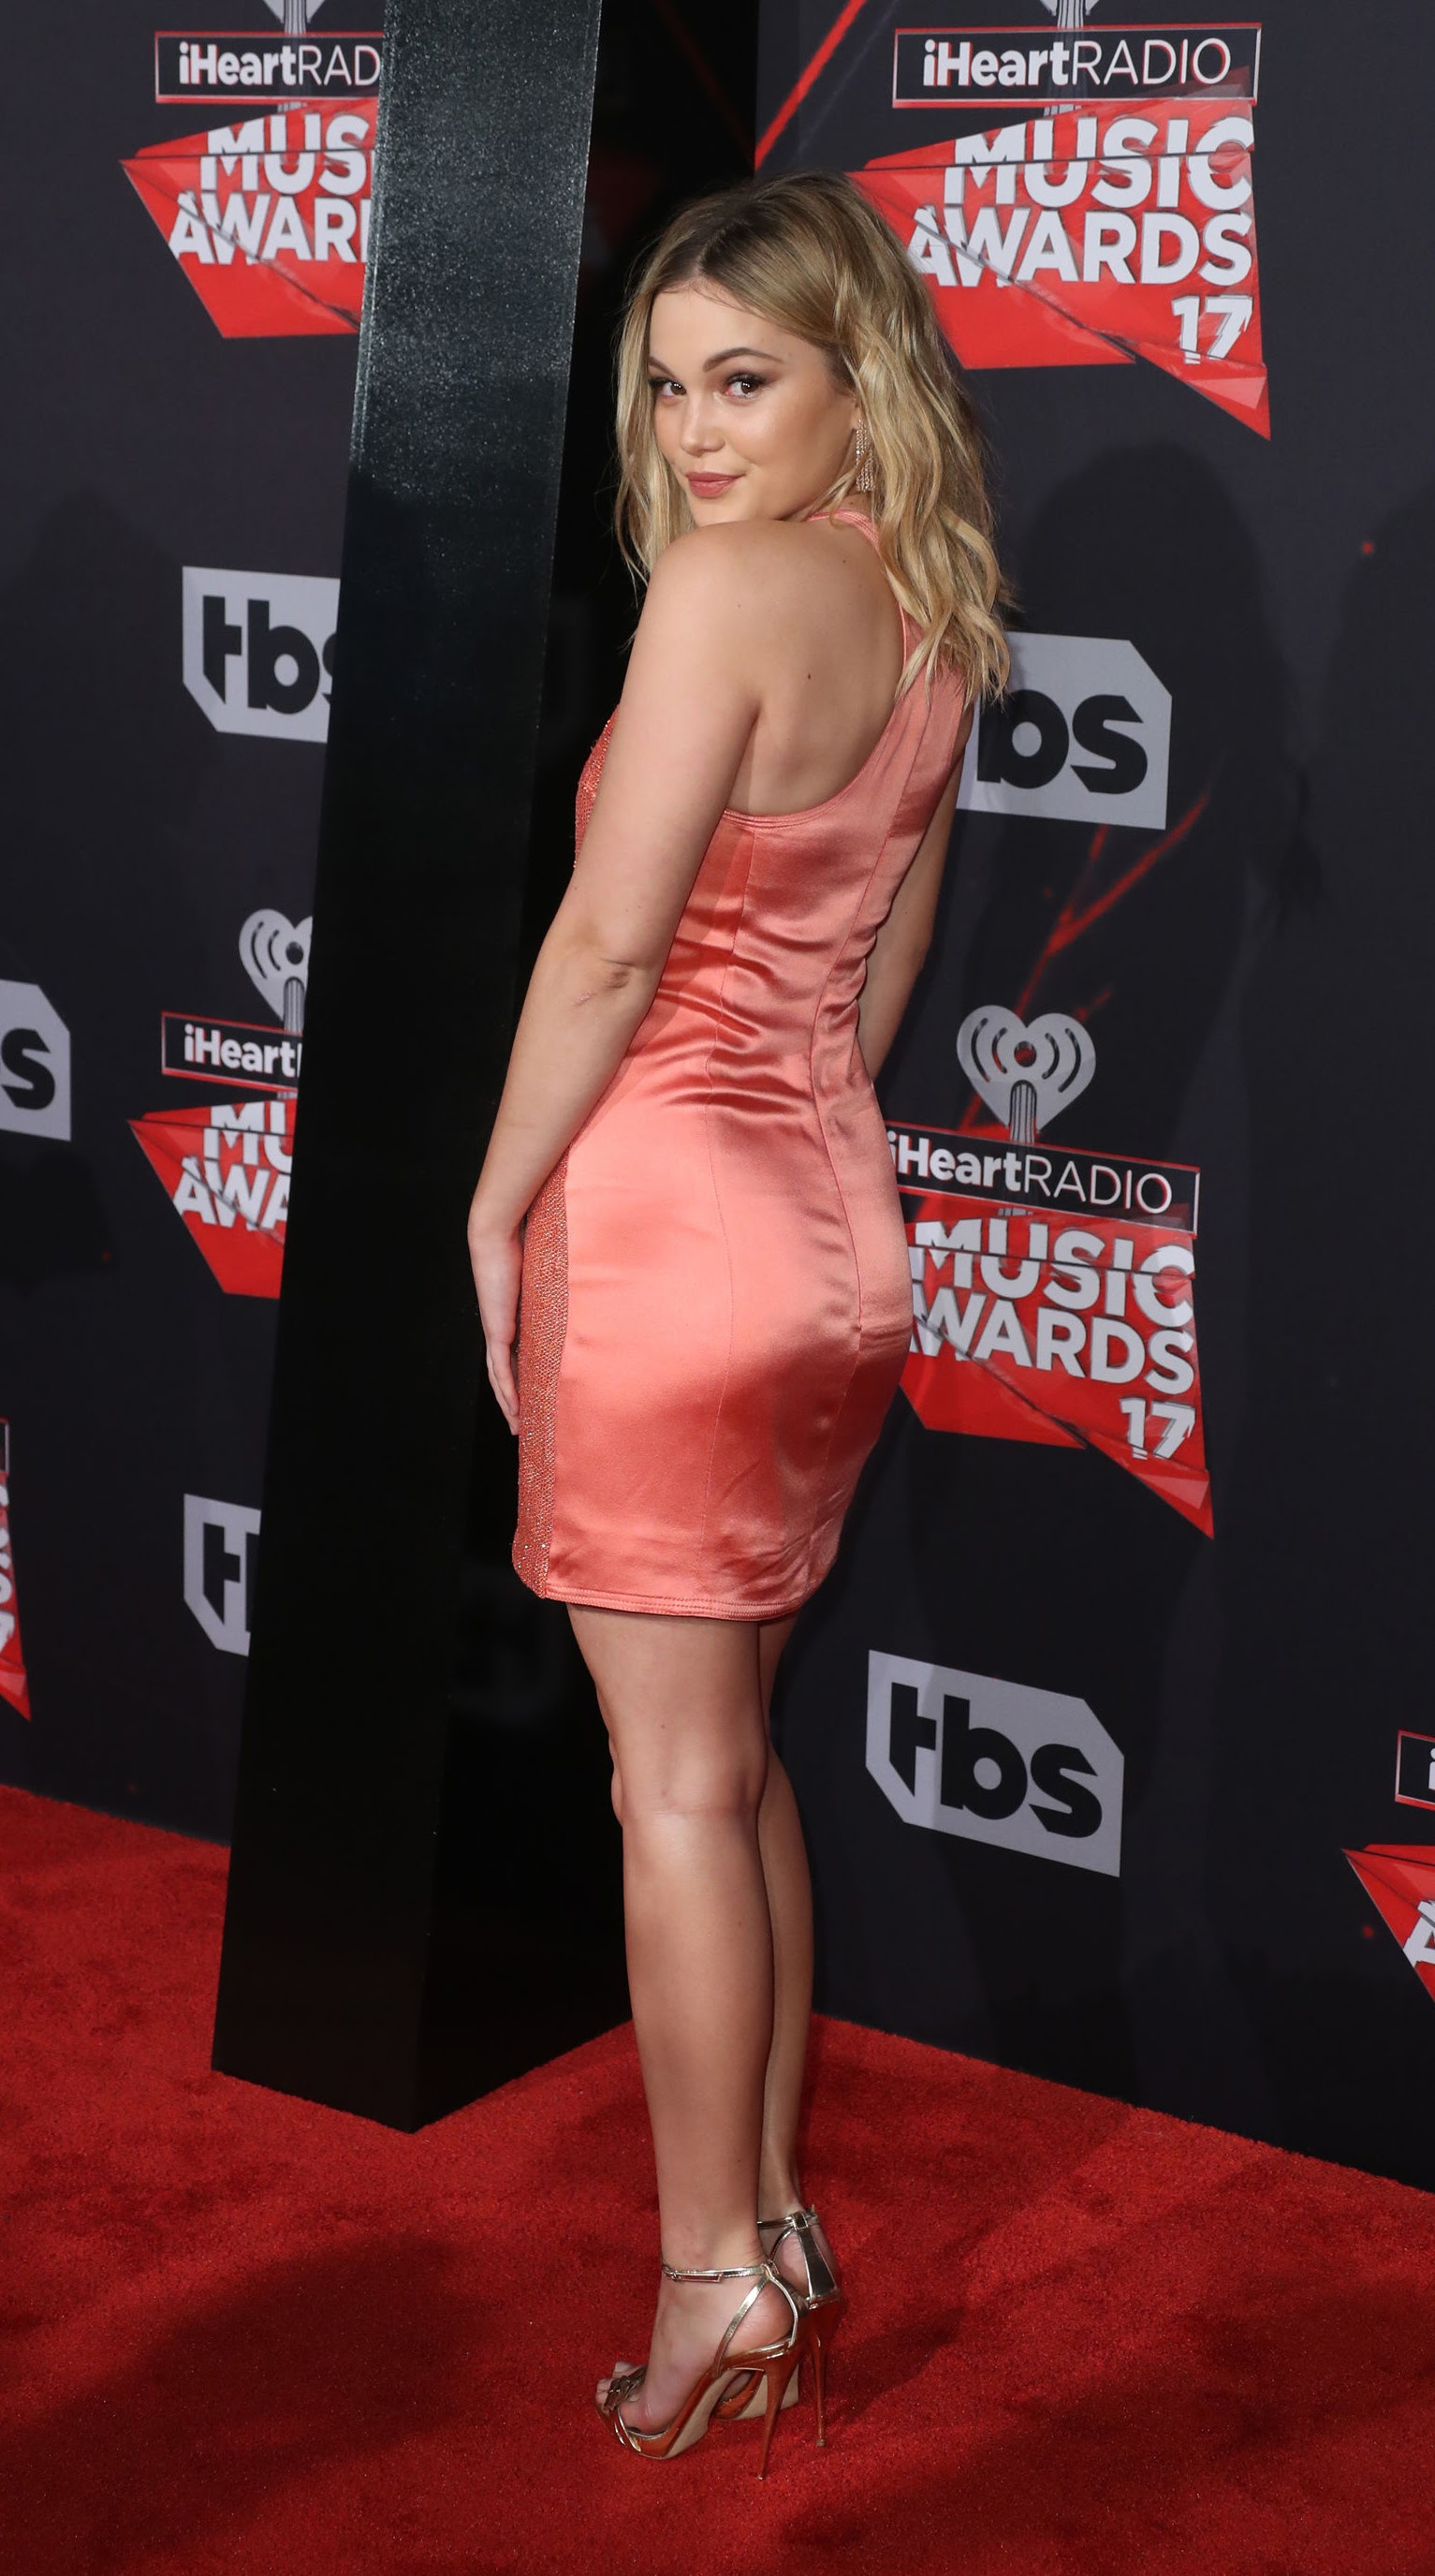 Olivia Holt attended iHeartRadio Music Awards